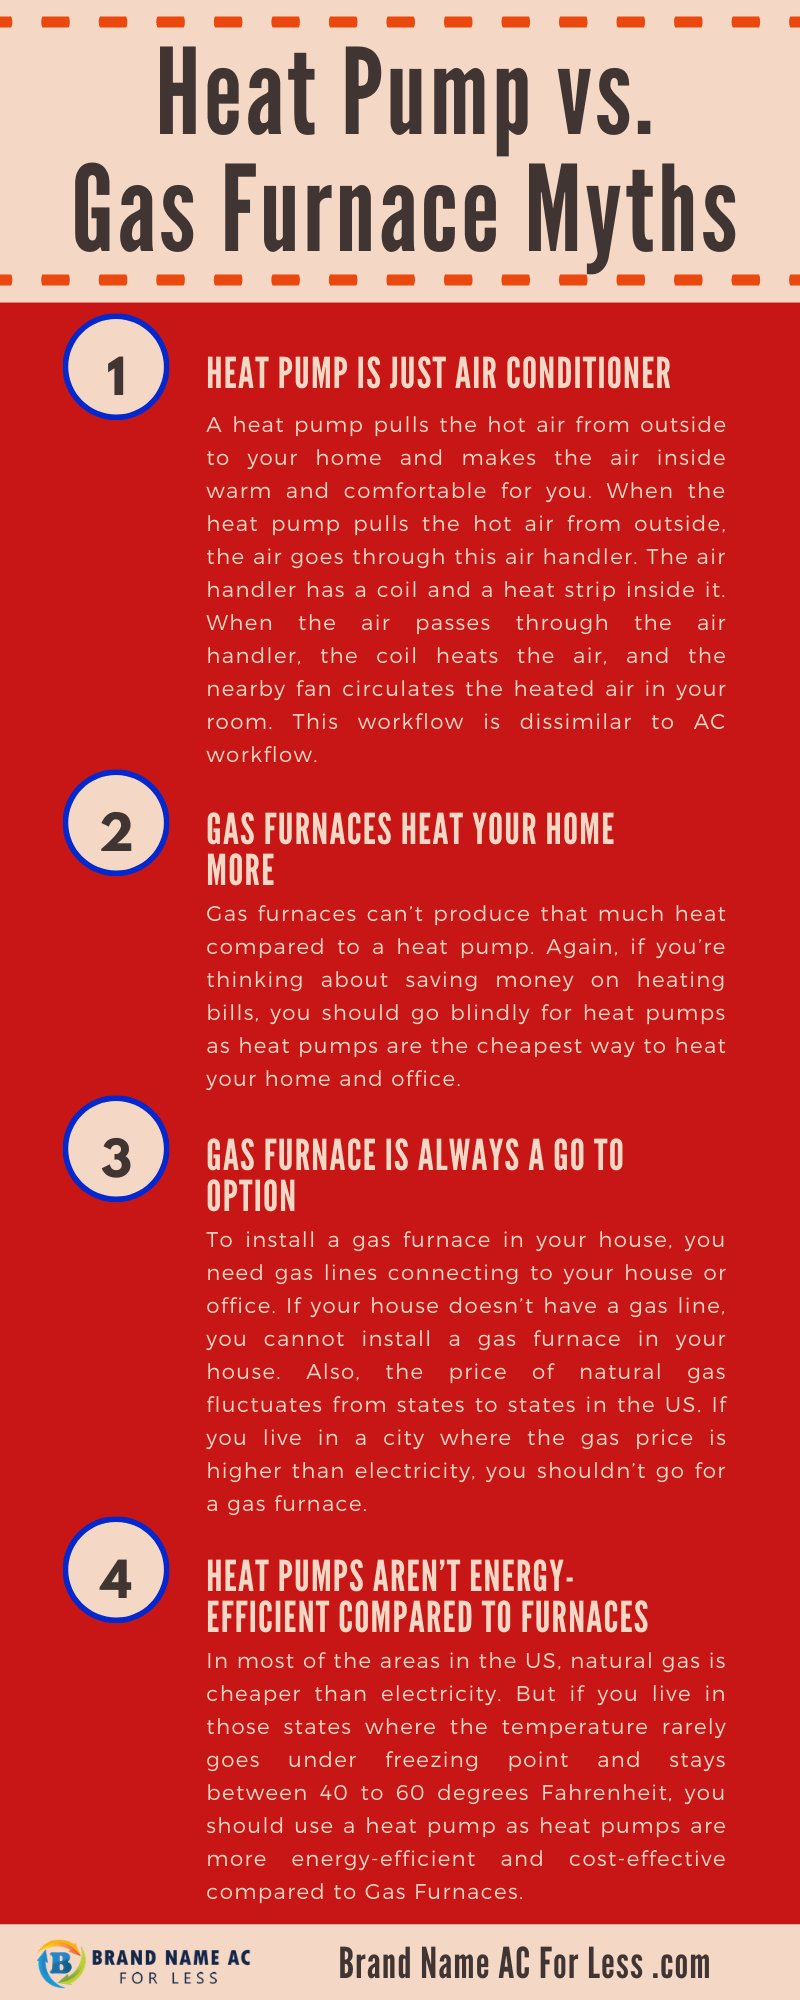 Heat Pump vs. Gas Furnace Myths